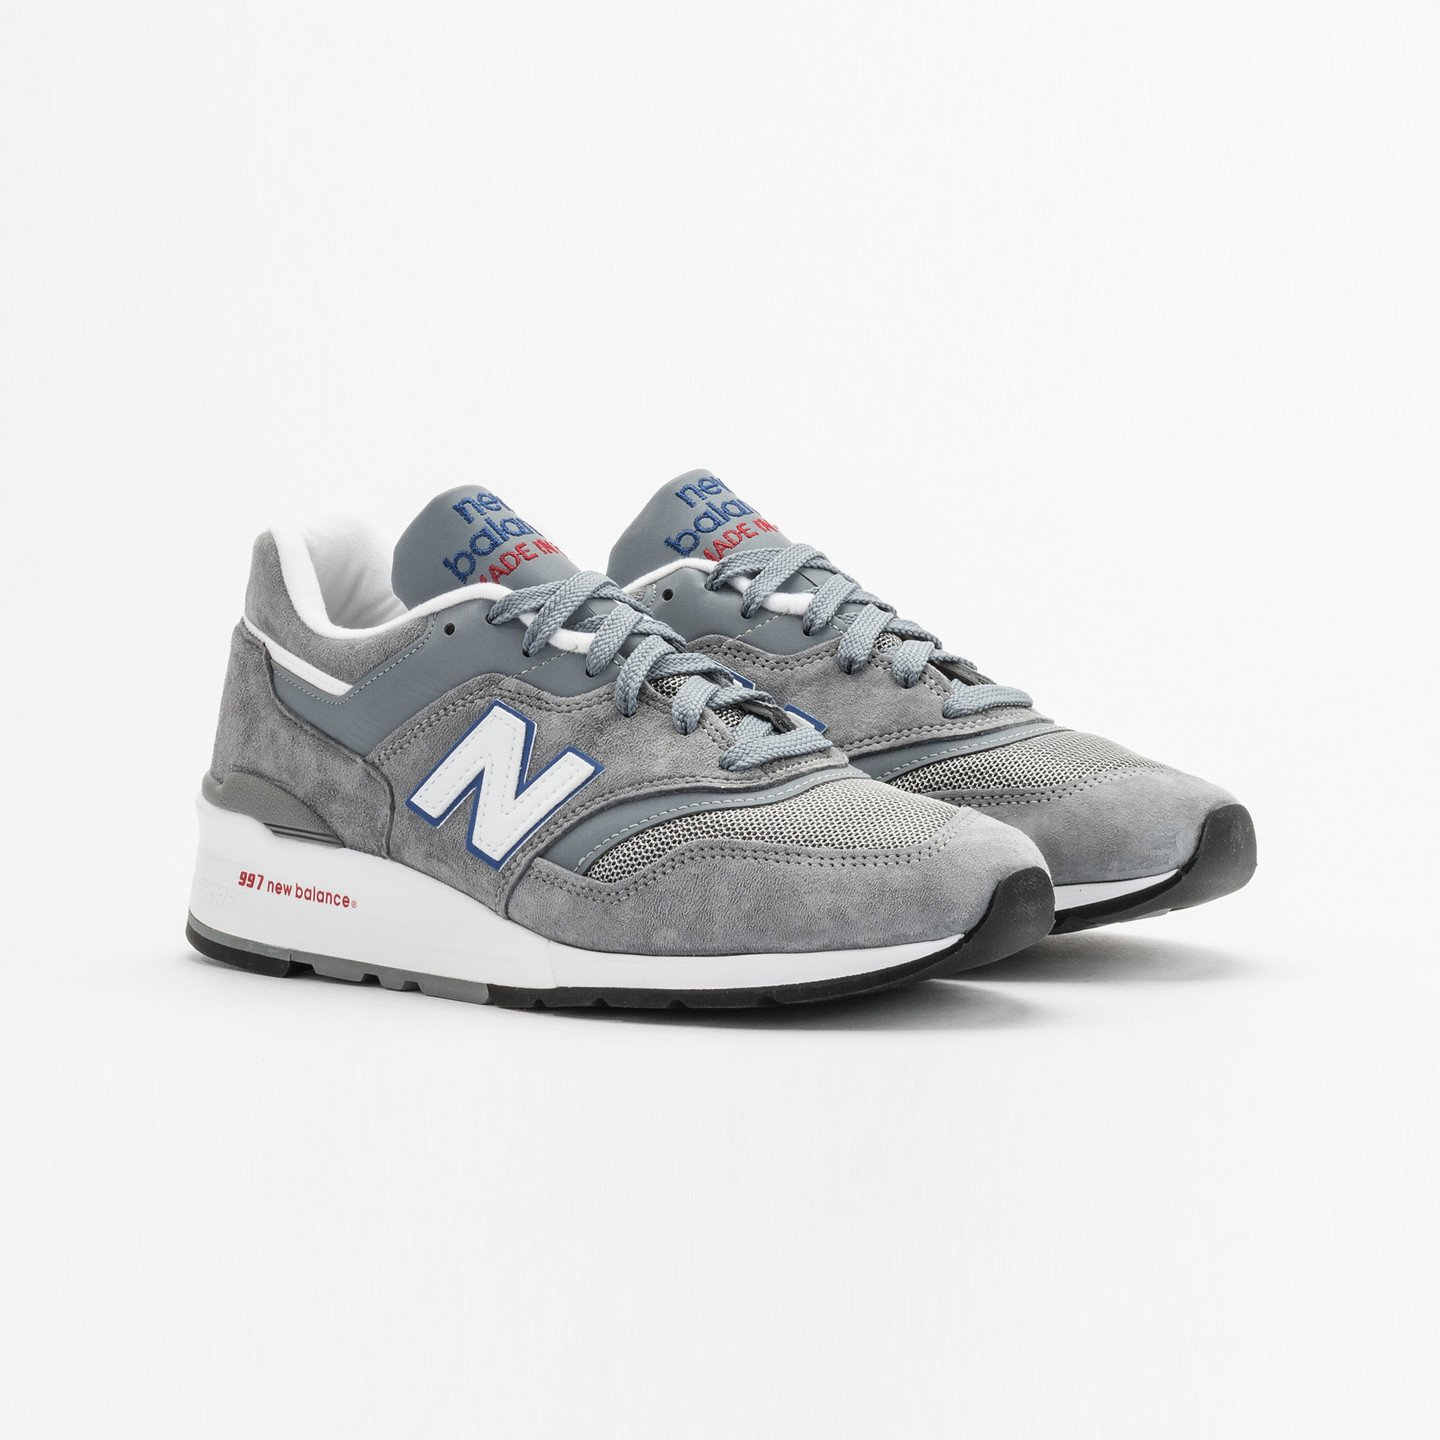 New Balance M997 Made in USA Grey / Blue / Red M997CNR-45.5